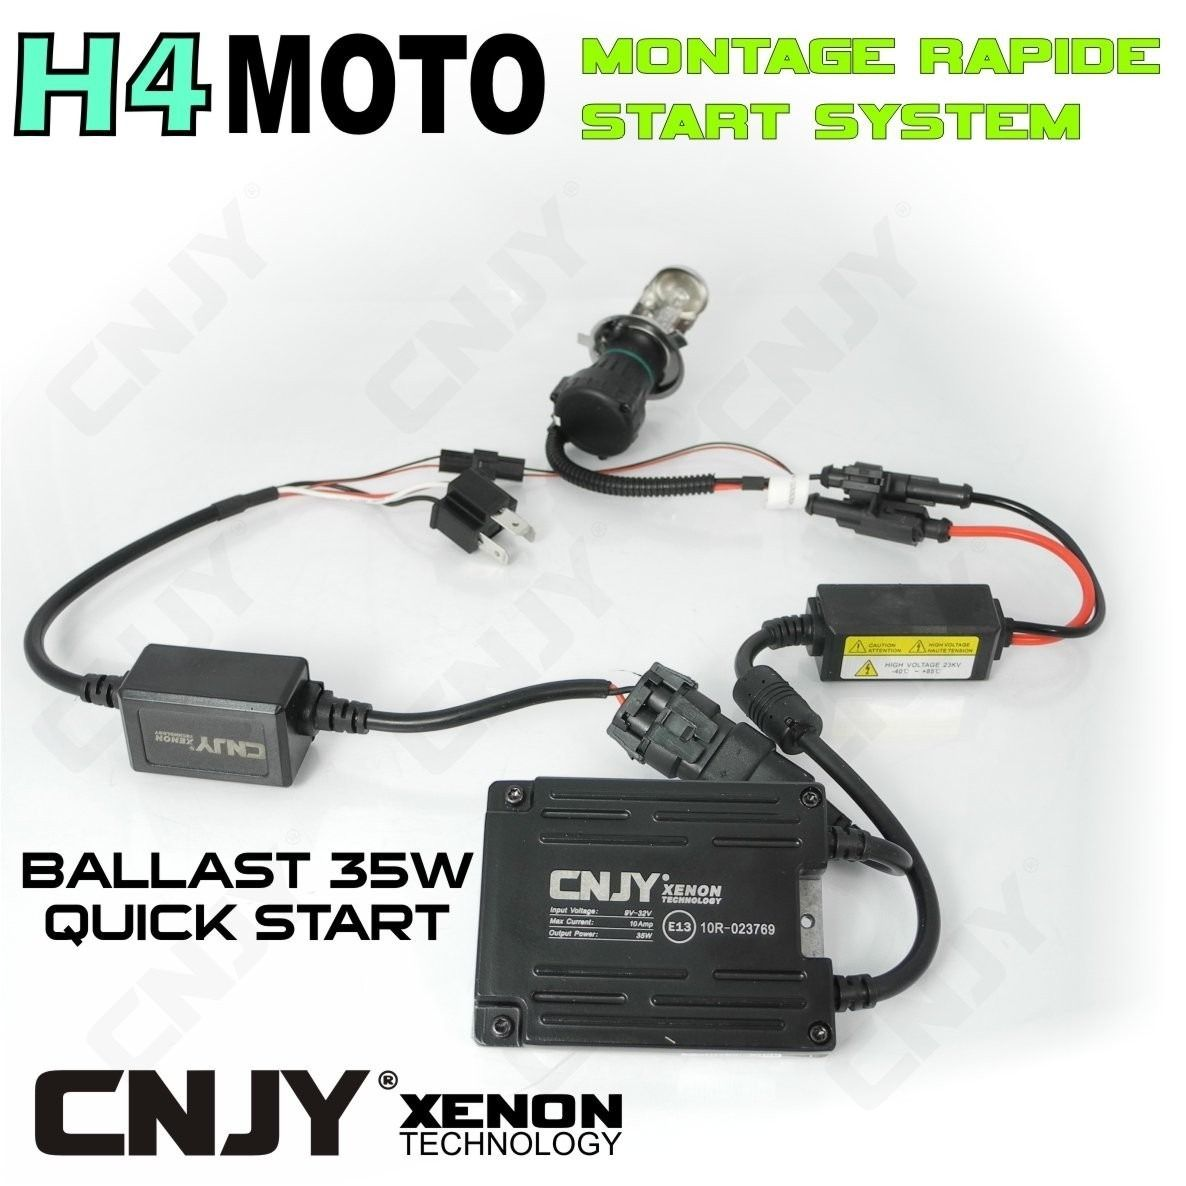 KIT BI XENON BIXENON H4 MOTO XENON 35W BALLAST PRISE H4 HI/LOW PLUG AND RUN